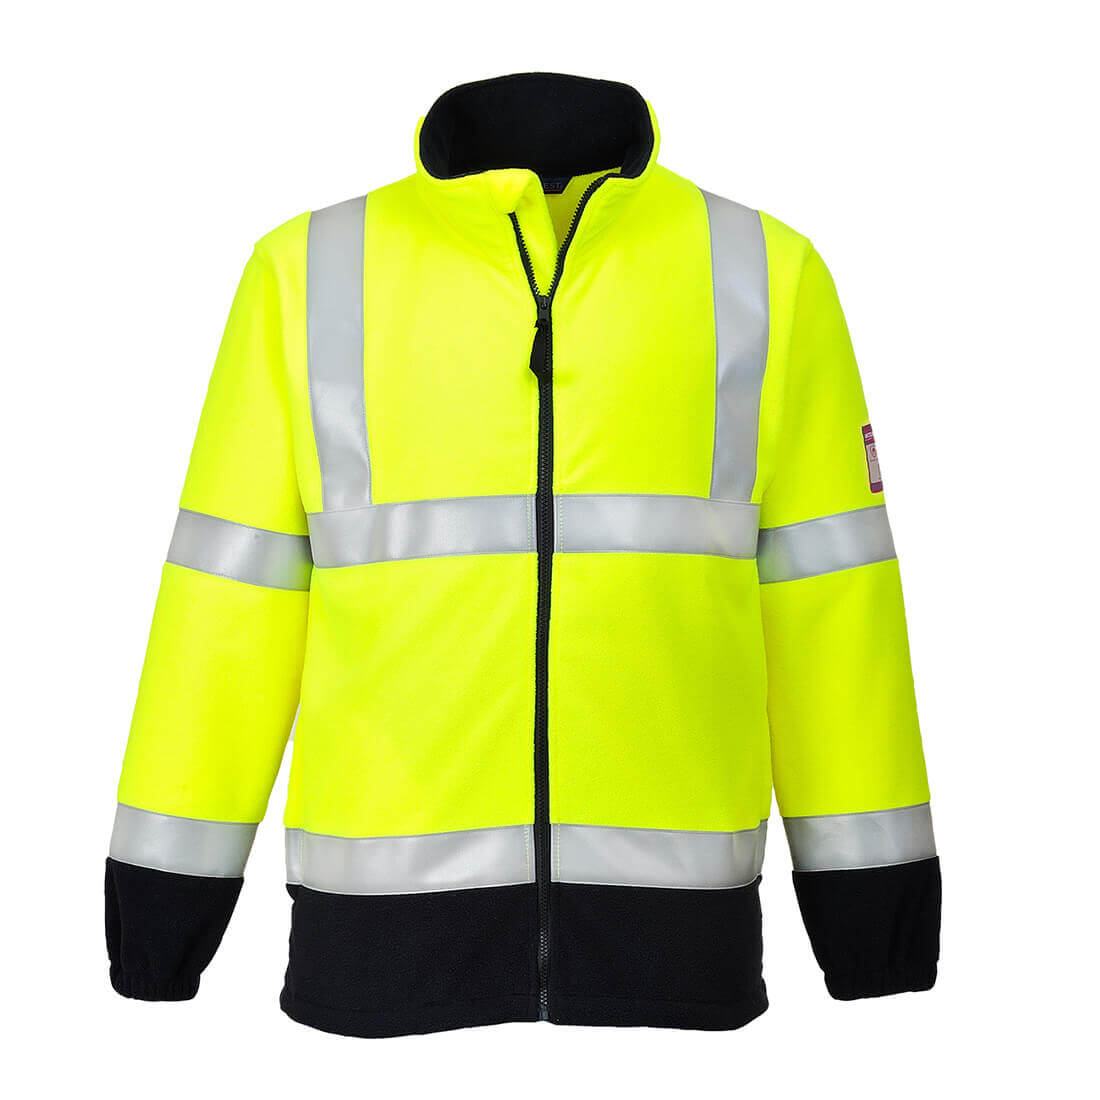 Image of Modaflame Flame Resistant Hi-Vis Fleece Yellow M